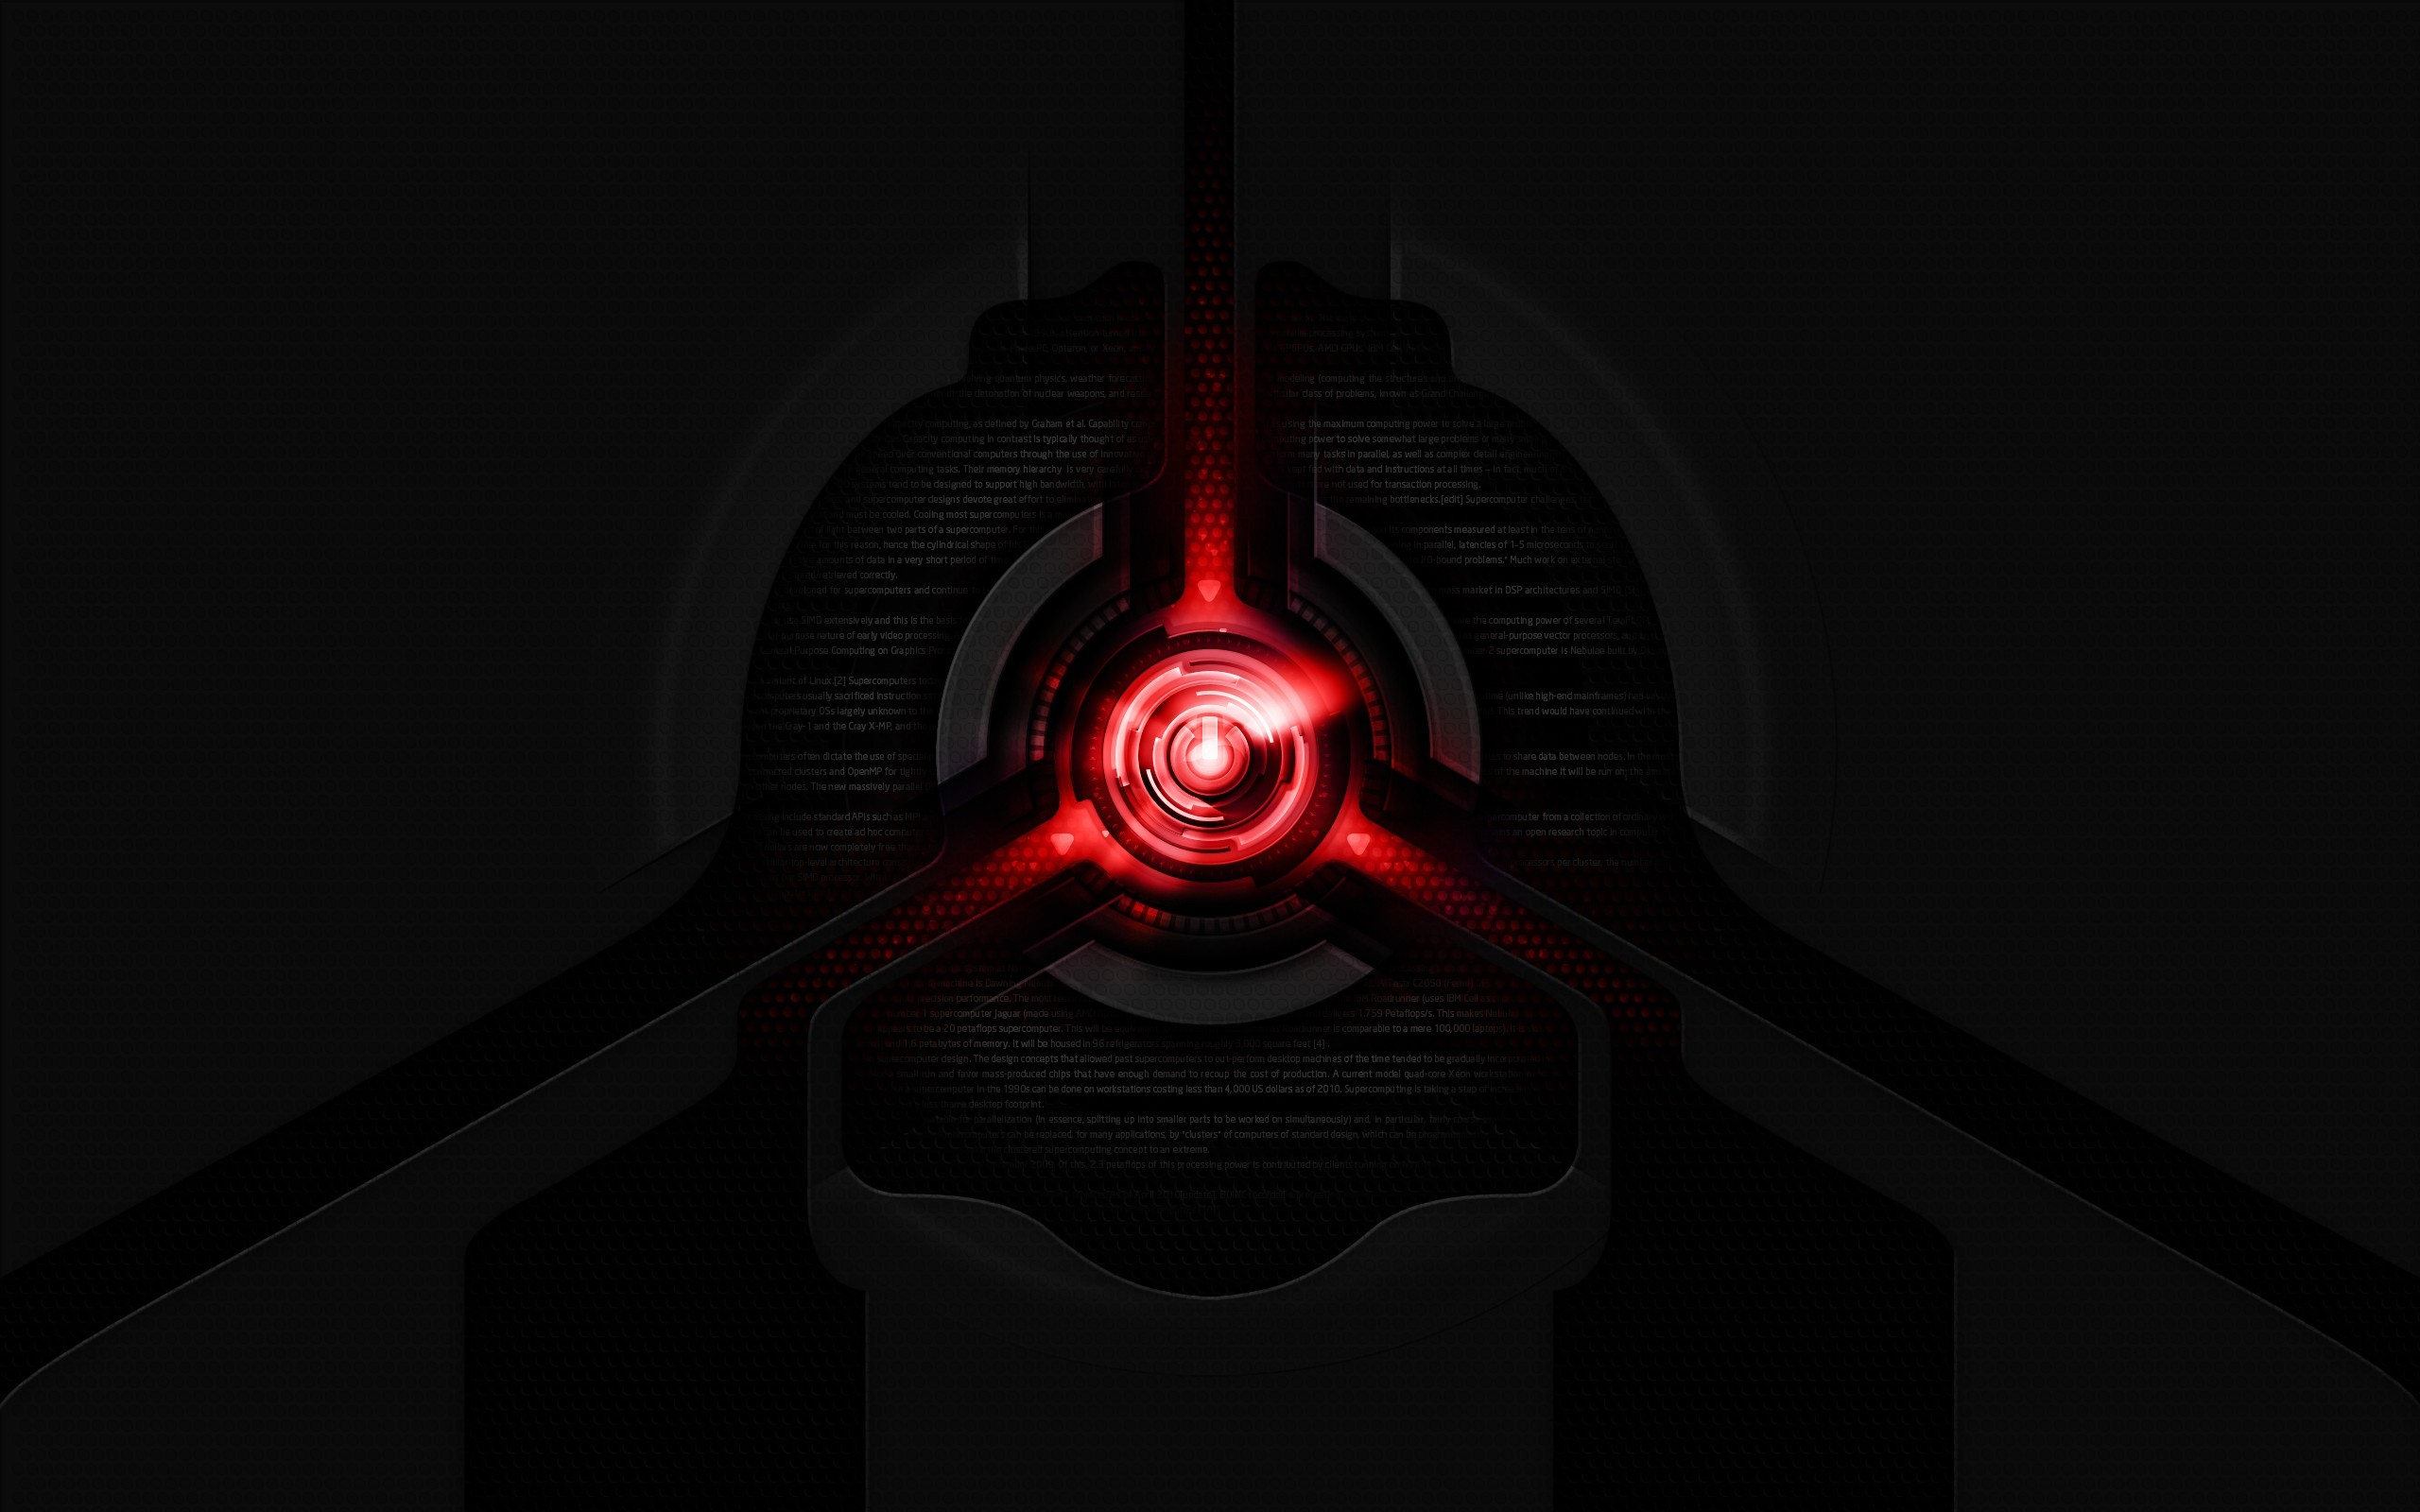 Cool Red And Black Themes 17 Widescreen Wallpaper. Cool Red And Black  Themes 17 Widescreen Wallpaper